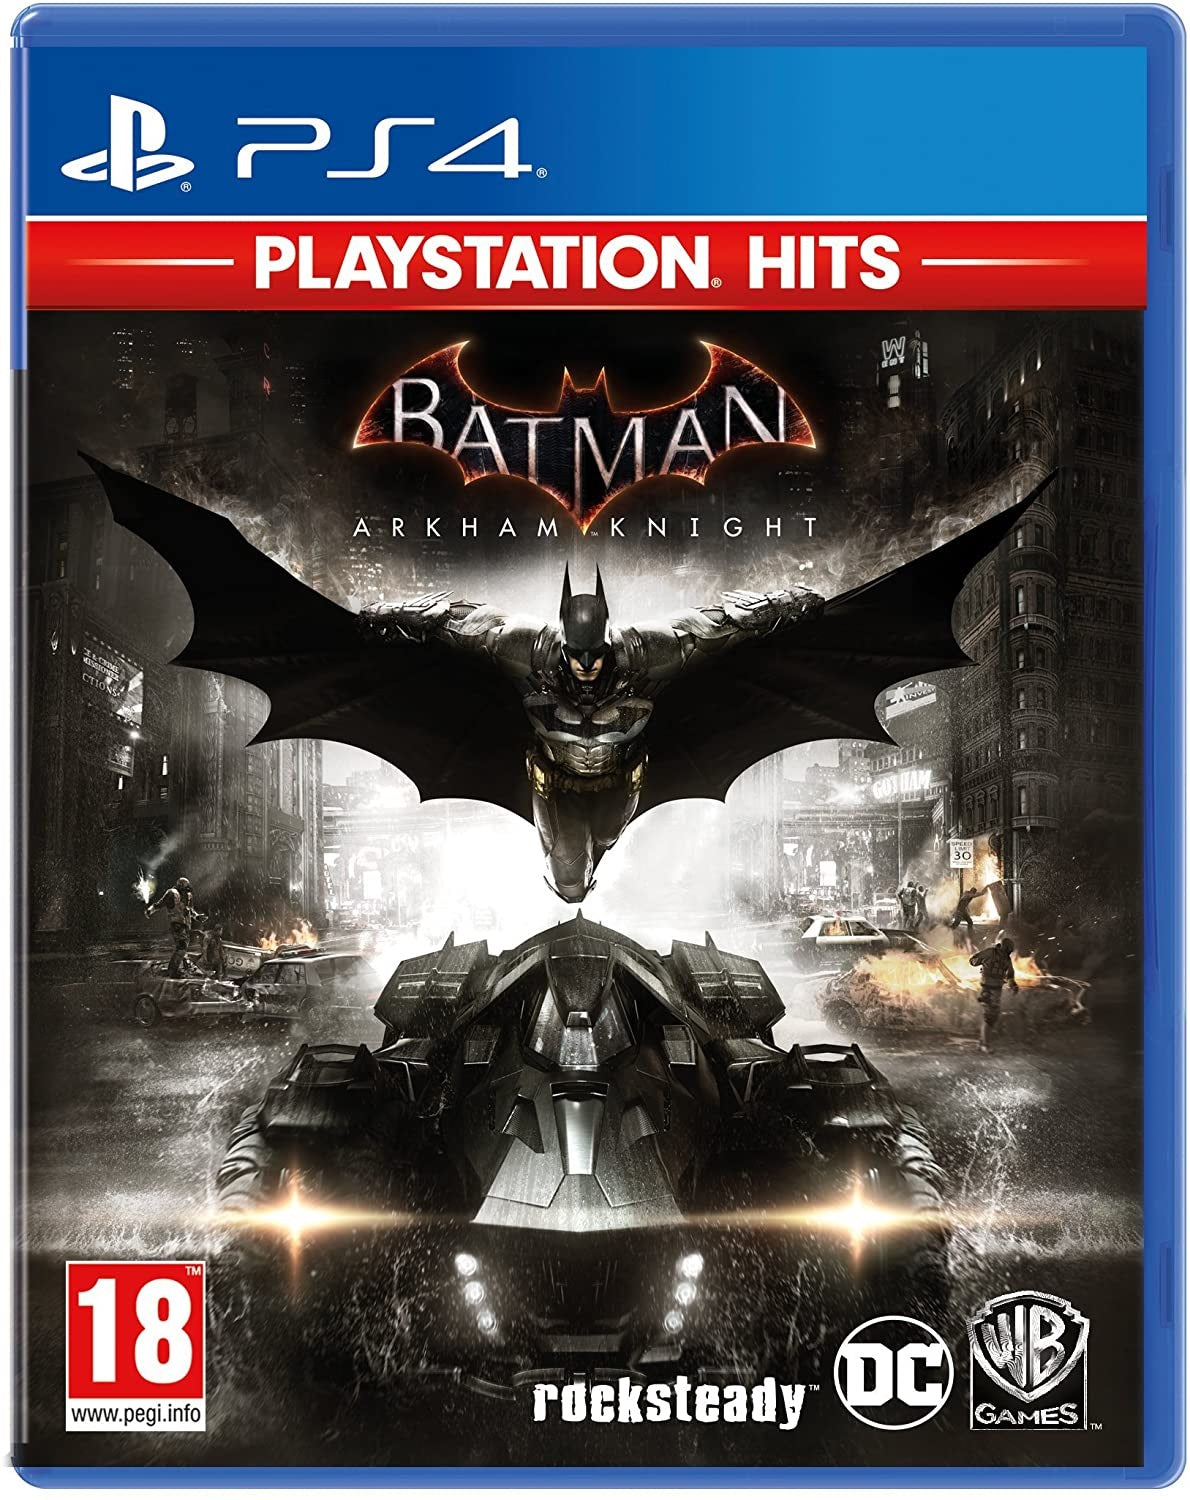 PS4 Batman Arkham Knight (18) Preowned